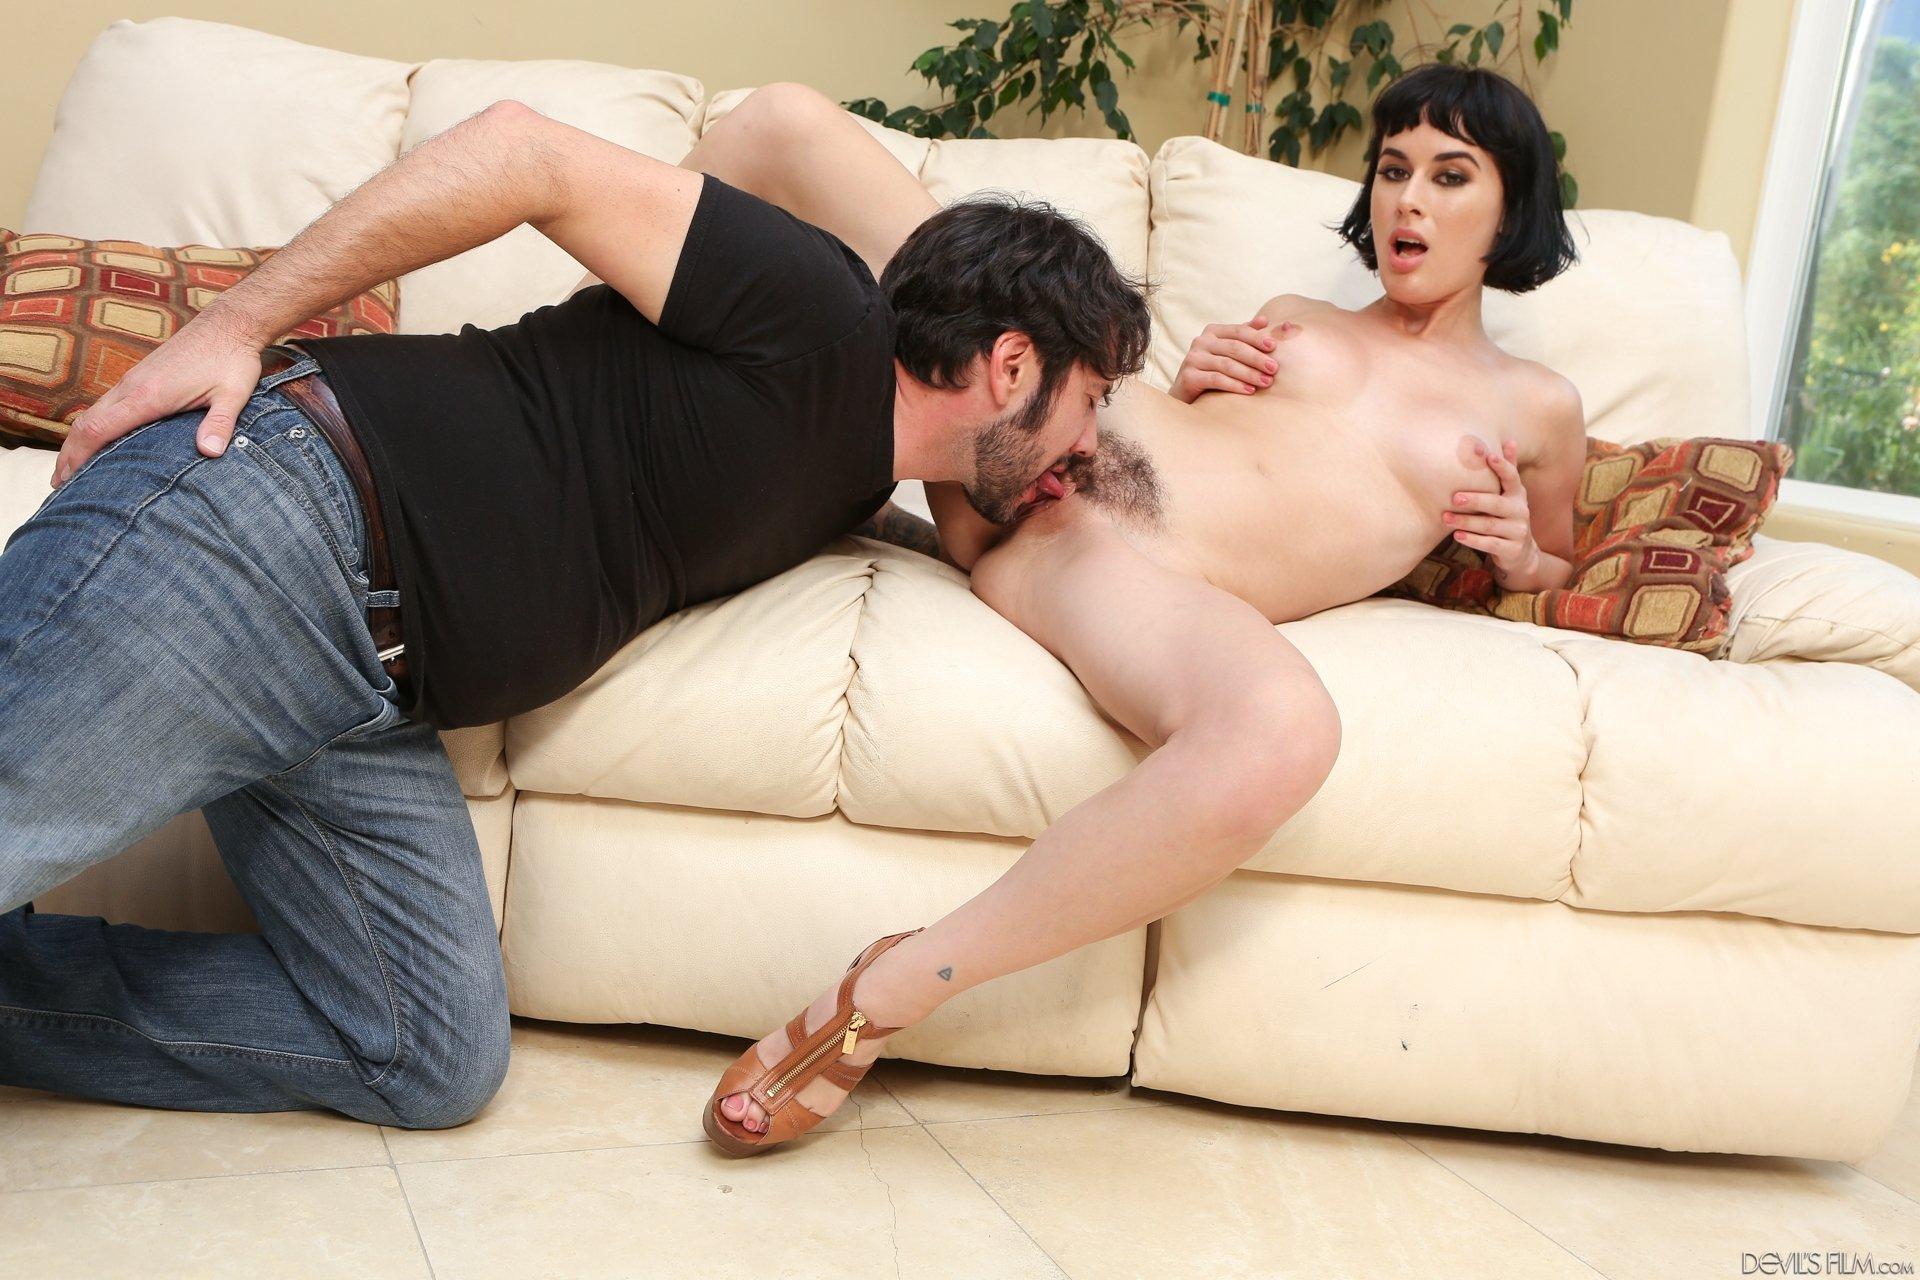 Milf in stockings anal #1